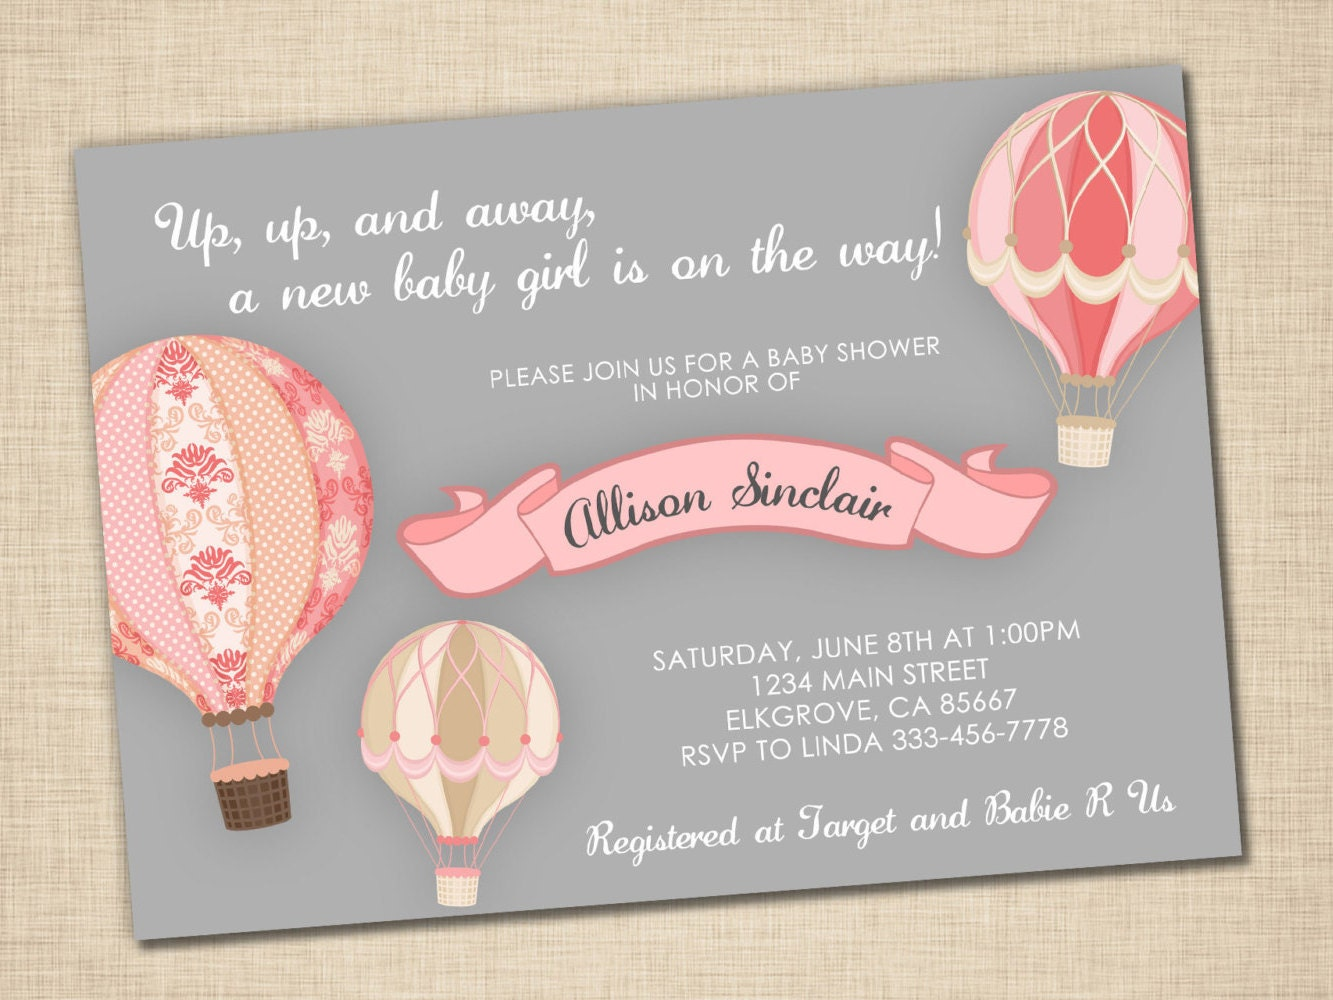 up up and away baby shower invitation baby girl hot air. Black Bedroom Furniture Sets. Home Design Ideas